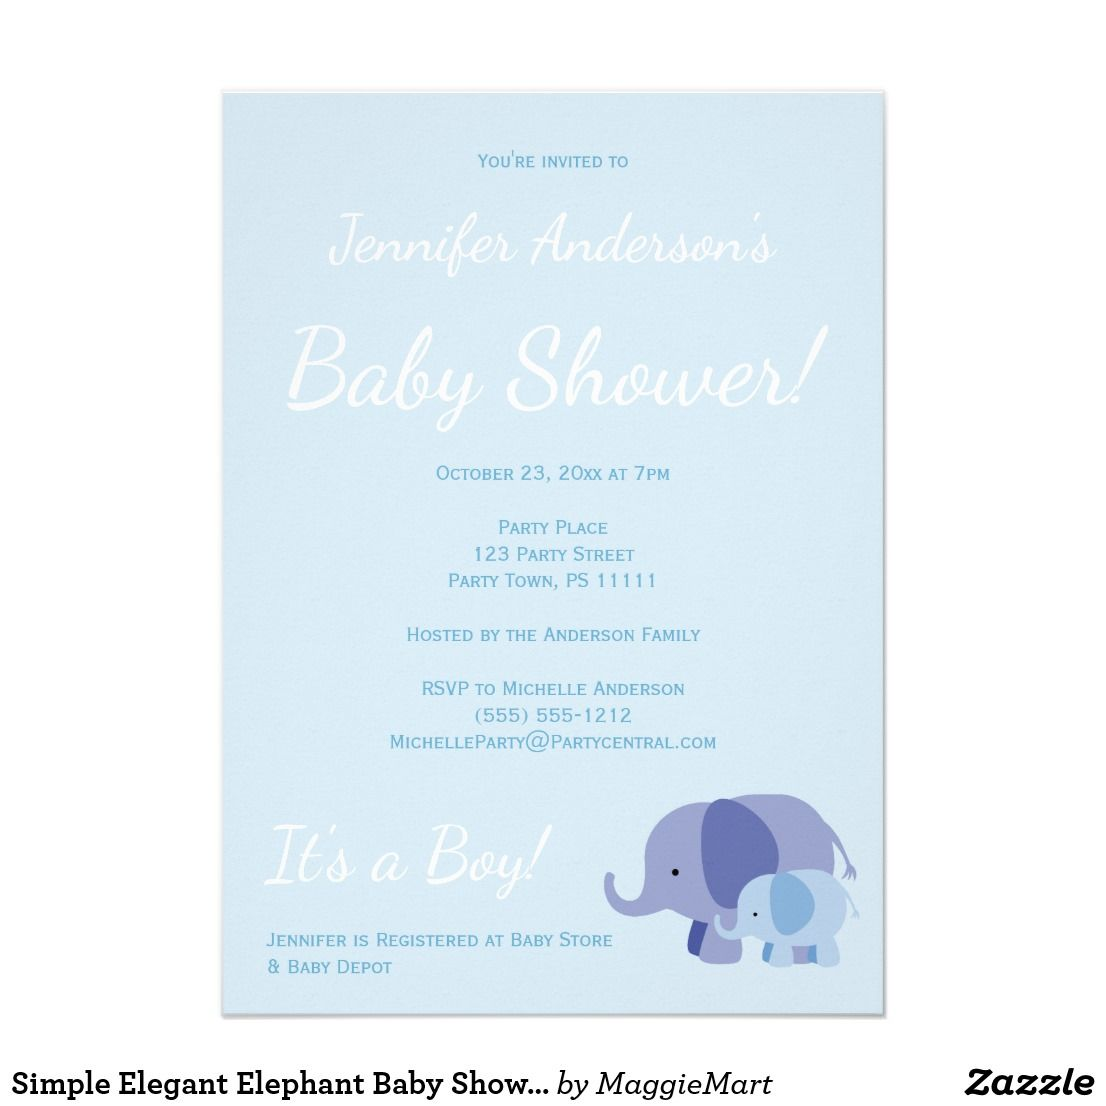 Simple Elegant Elephant Baby Shower Card | Elephant baby showers and ...